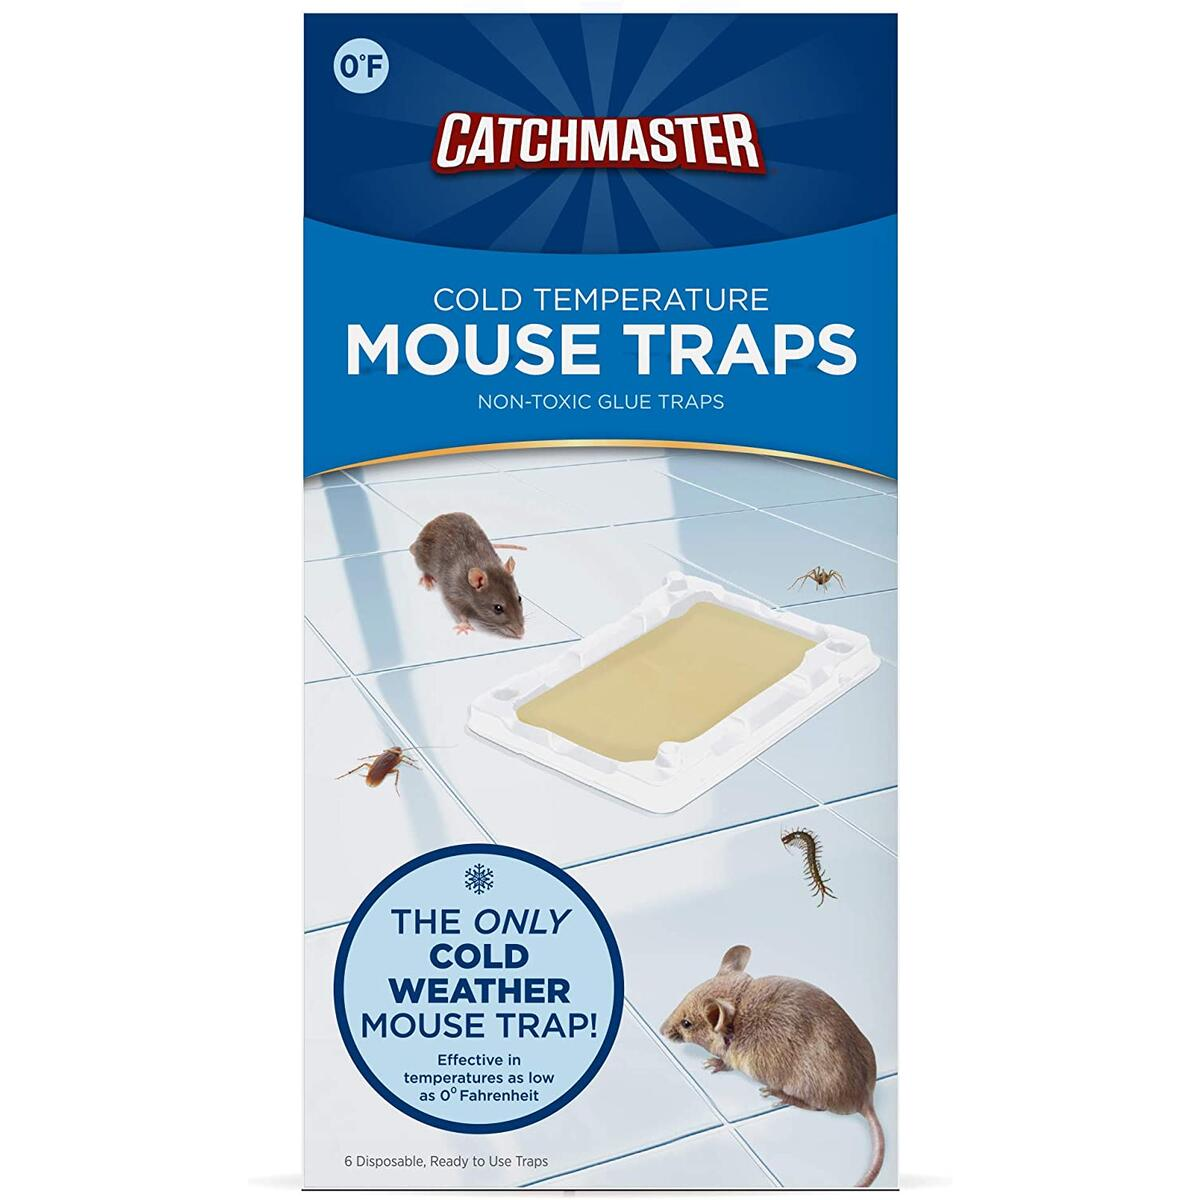 Catchmaster Cold Weather Mouse, Rodent & Insect Glue Trays - Mouse Traps - 6 Glue Trays  - ONLY COLD WEATHER GLUE MOUSE TRAP ON THE MARKET